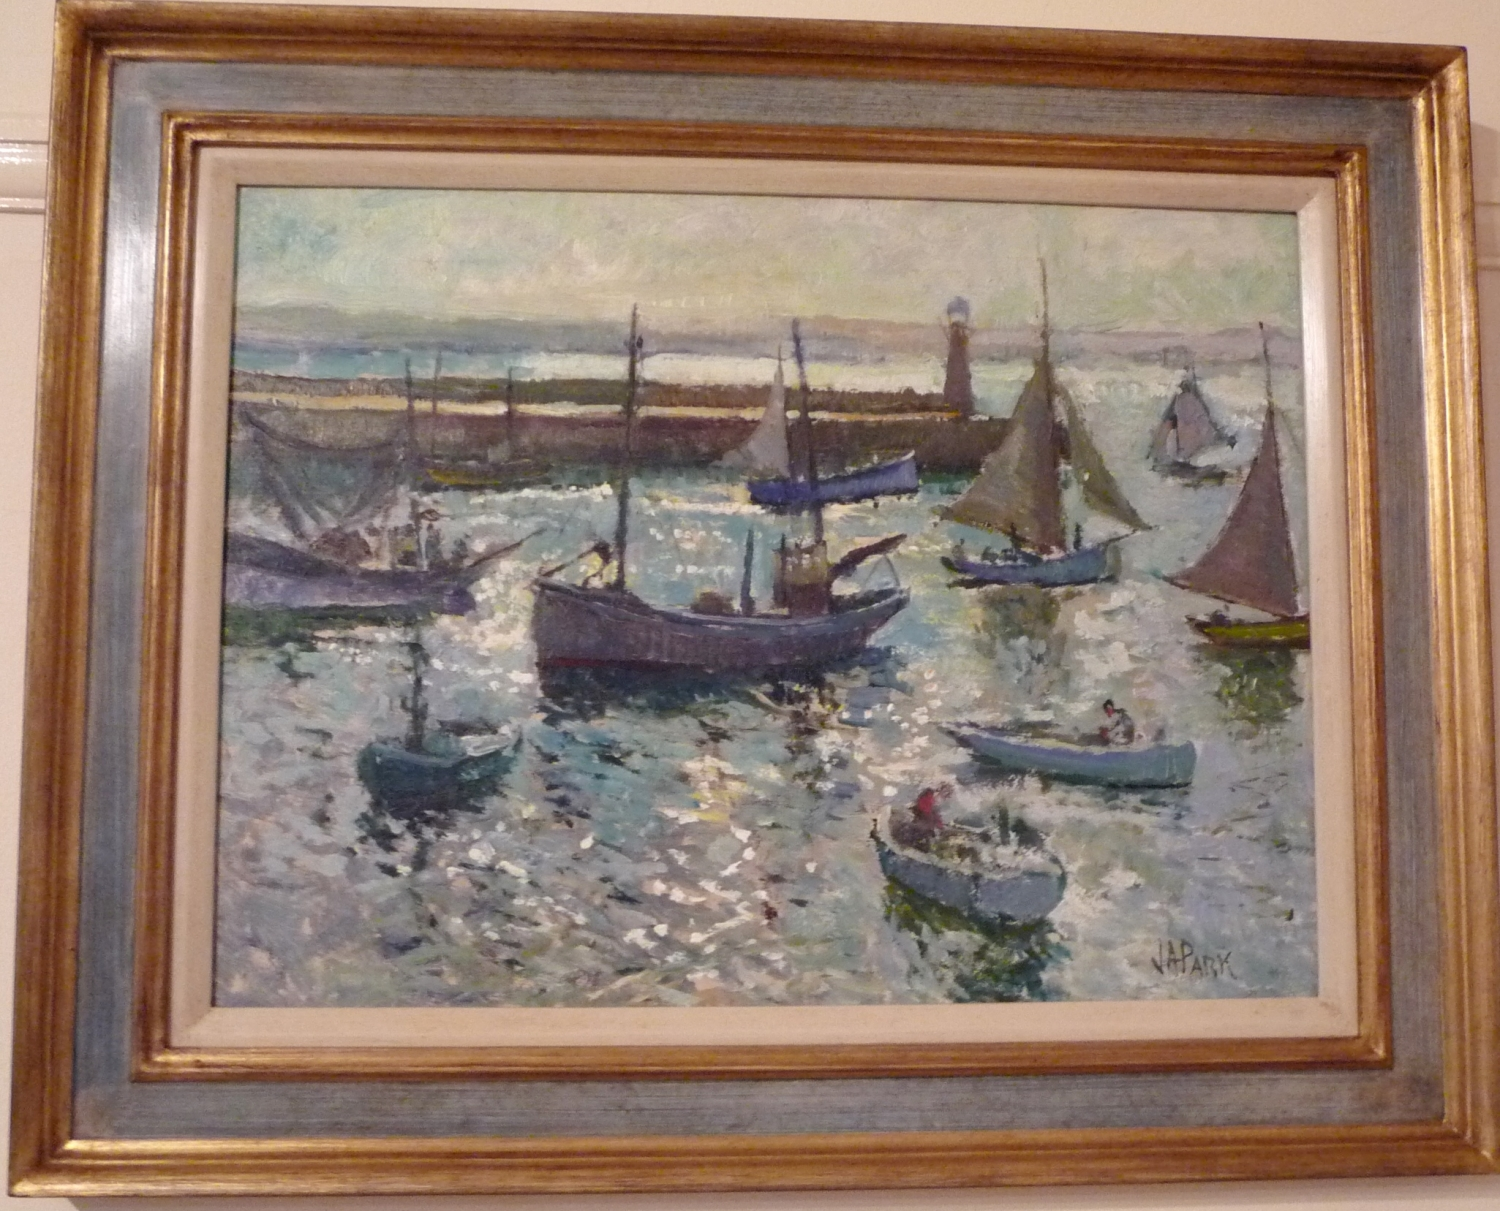 Oil painting of St.Ives by John Anthony Park